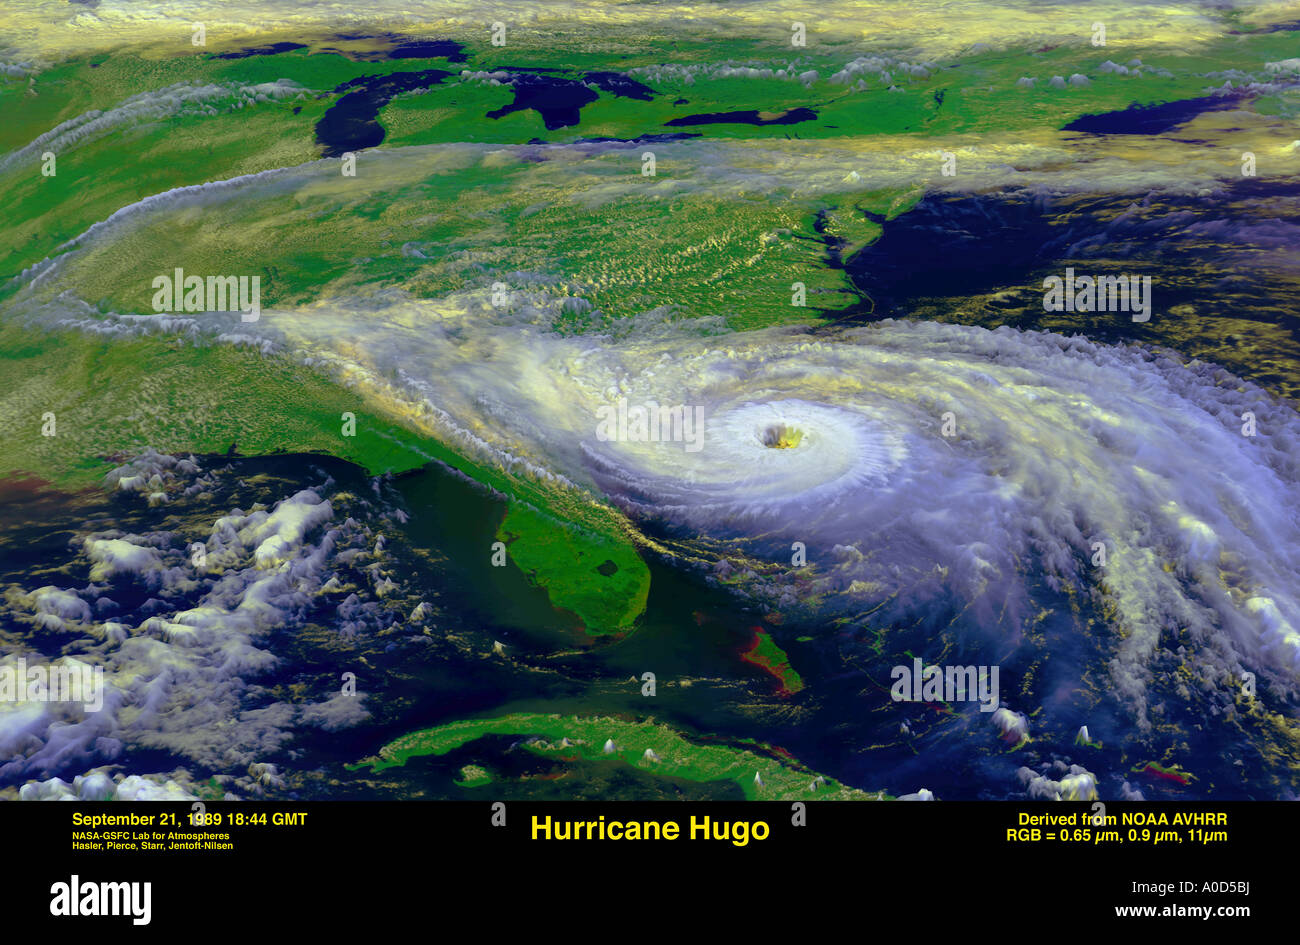 Satellite view of Hurricane Hugo off the coast of Florida in 1989 with winds at 160 MPH - Stock Image